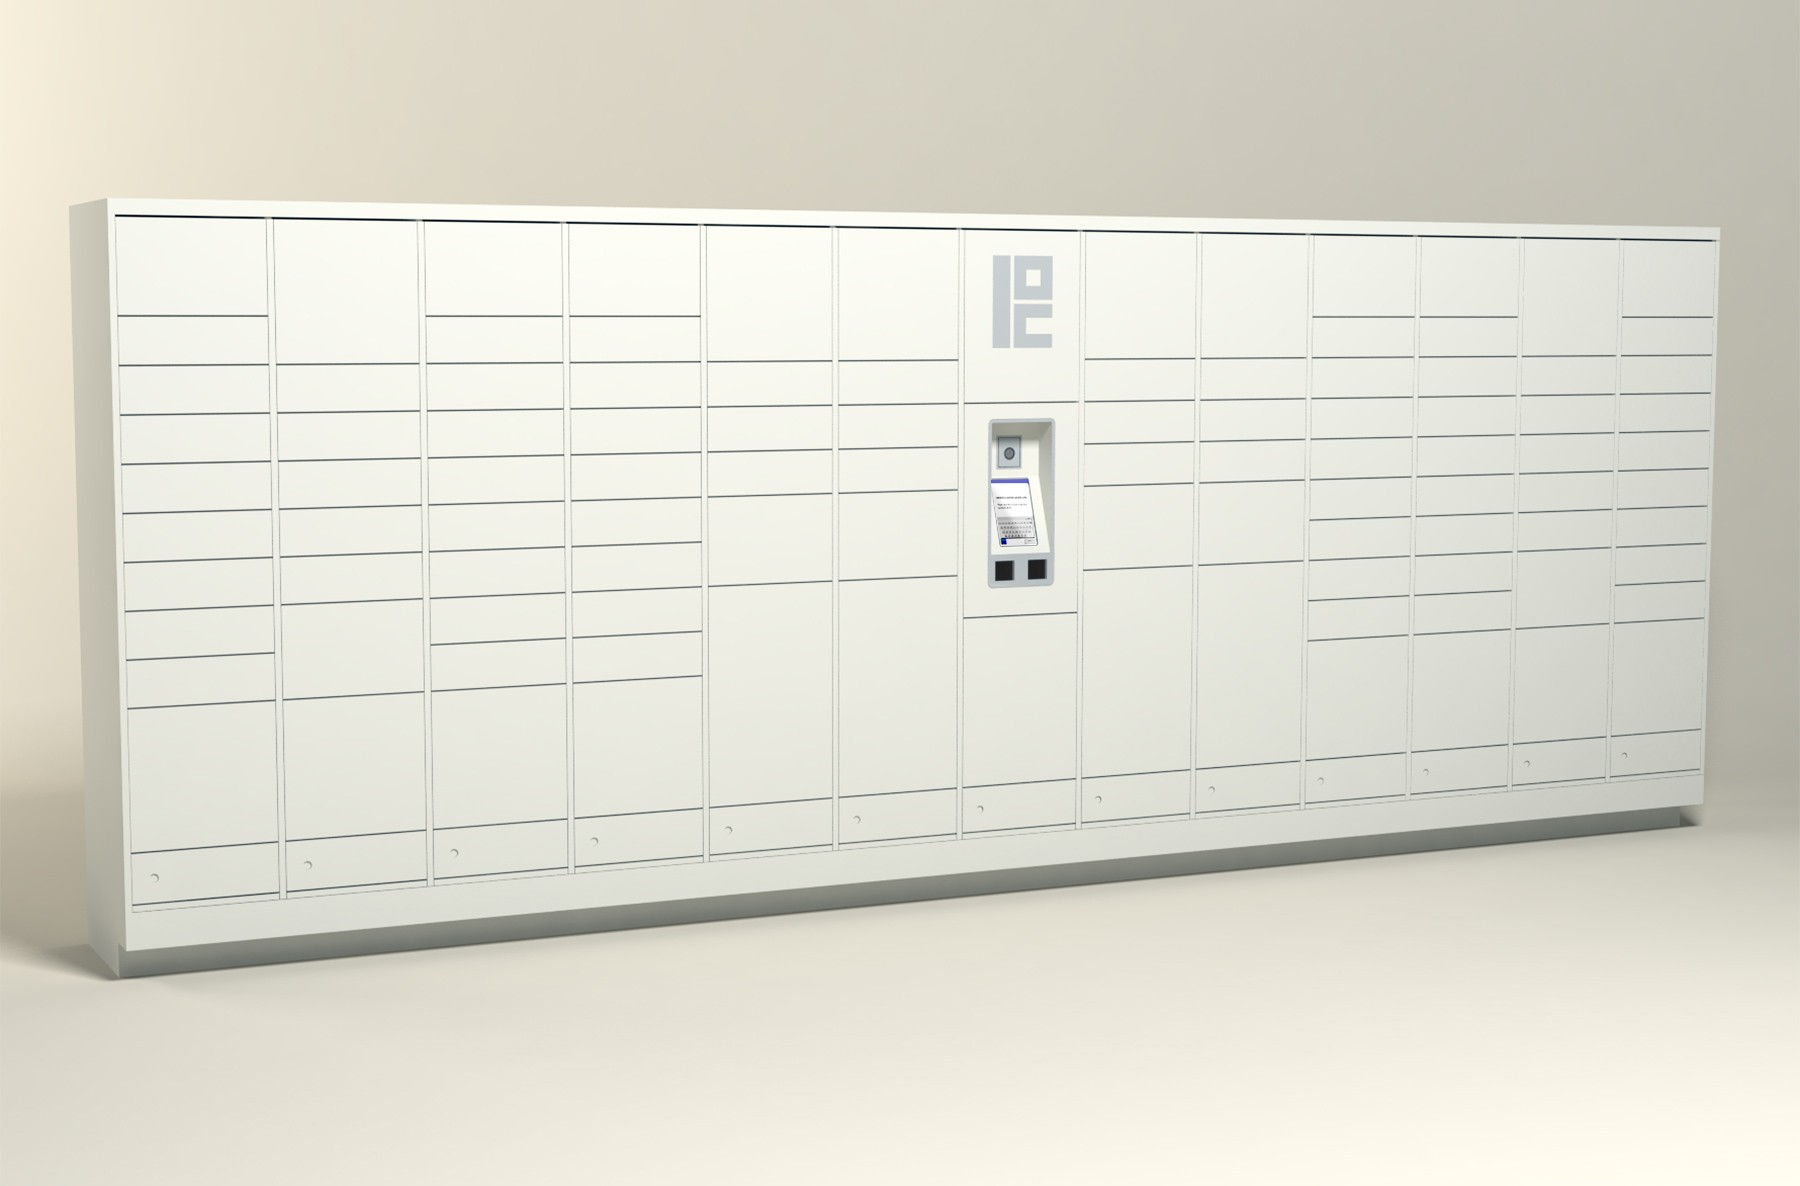 350 Unit - 102 Total Openings - Steel Smart Locker